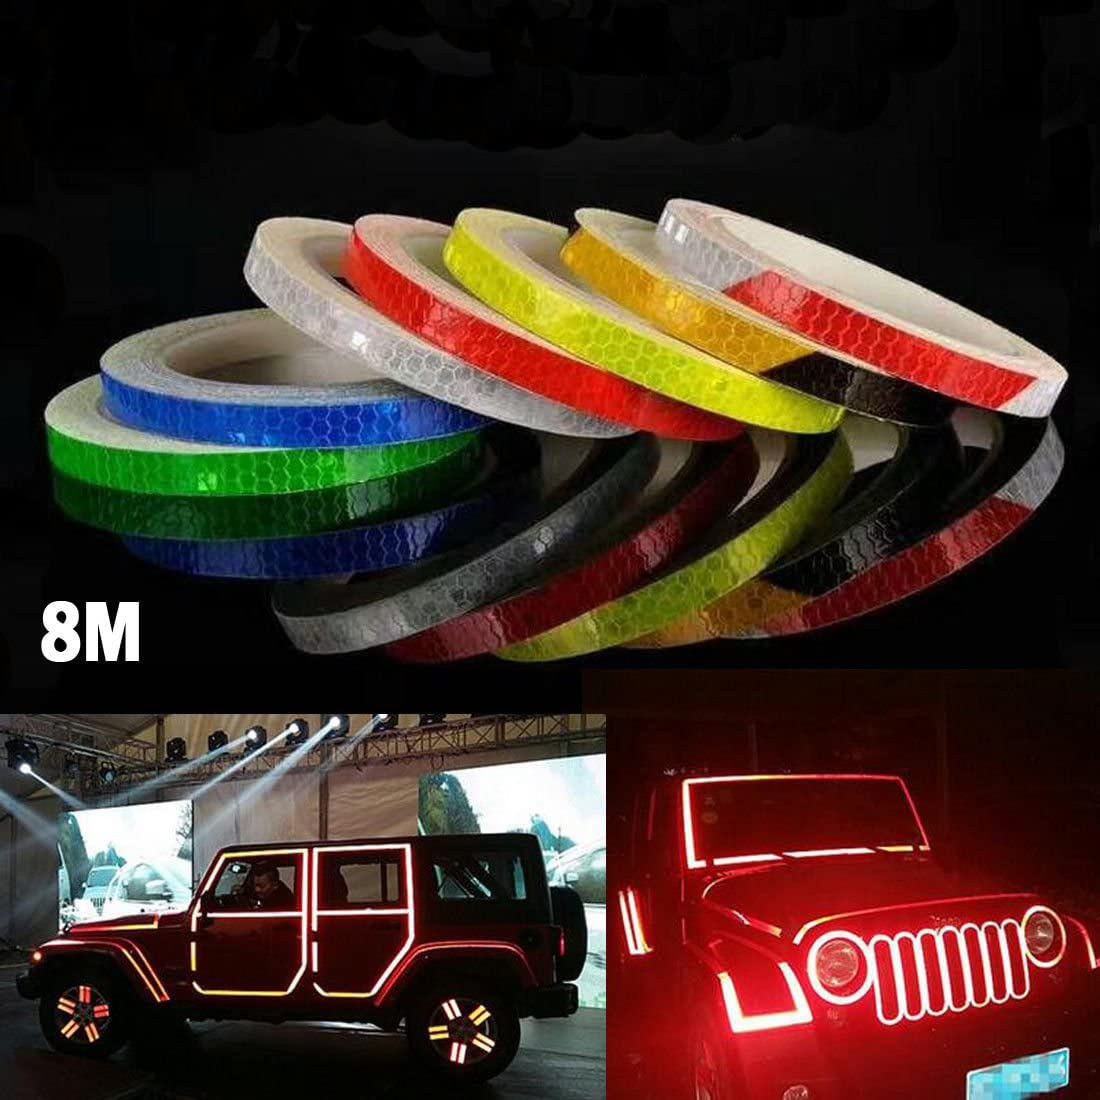 AM Safety Reflective Warning Lighting Sticker Adhesive Tape Roll Strip for Beautify Bicycle Bike Decoration